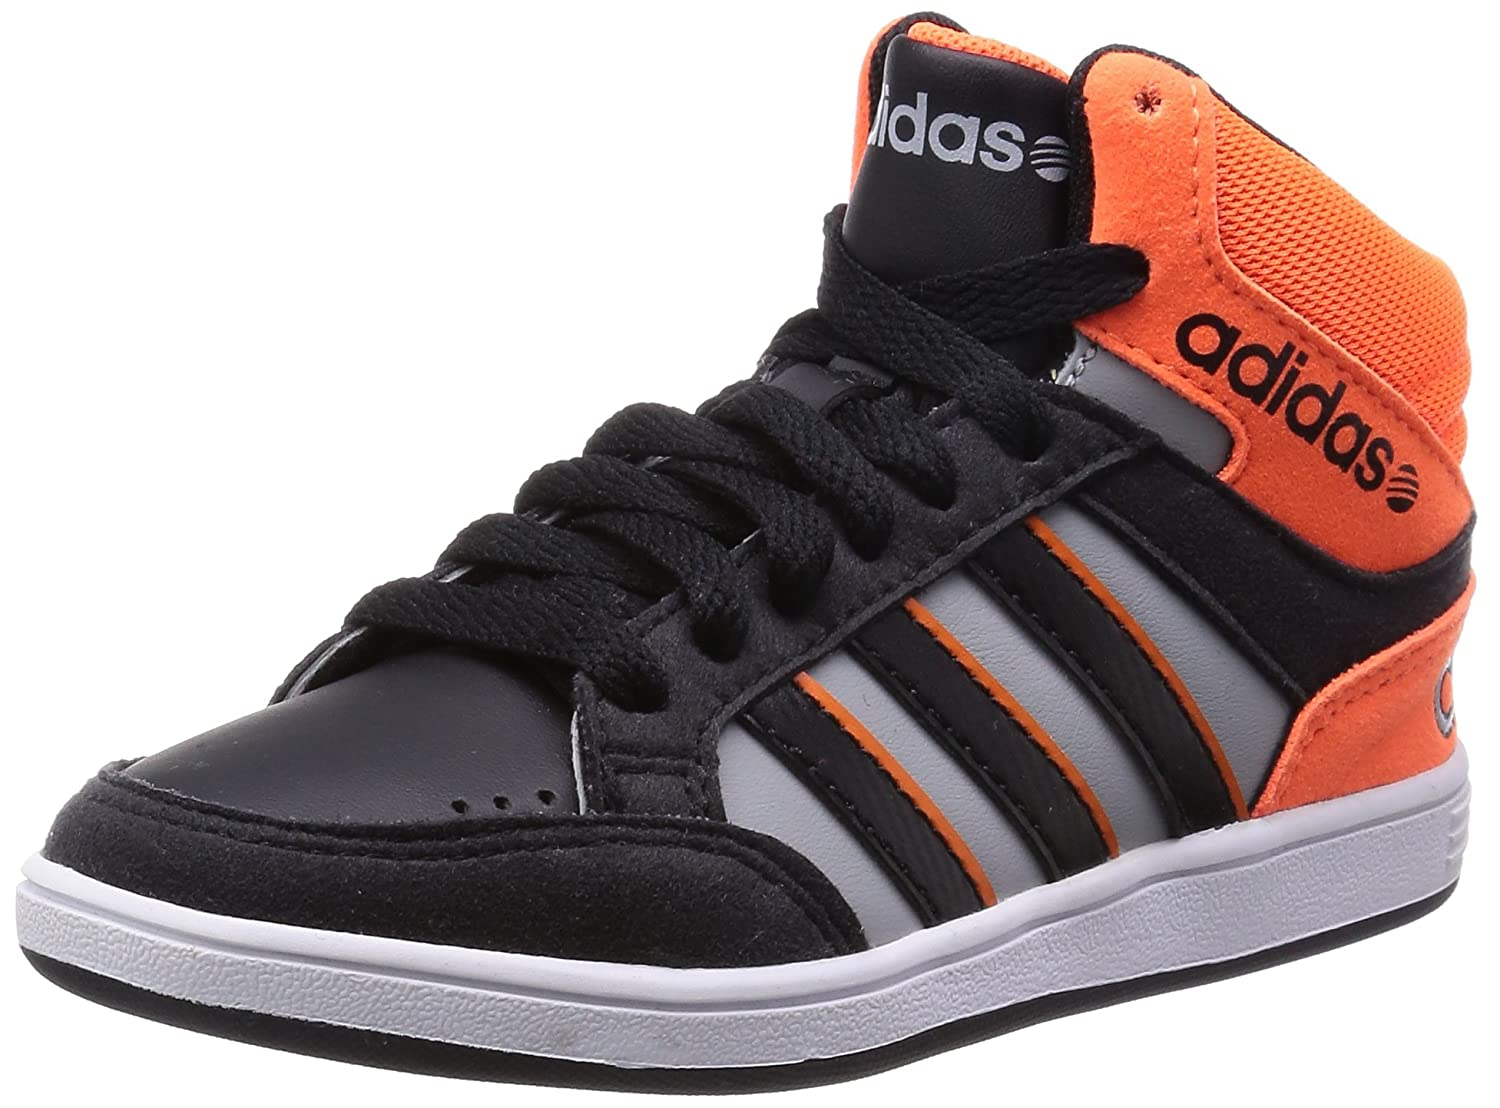 SCARPE ADIDAS HOOPS MID K TG 35 COD F98529 - 9B [US 3 UK 2.5 CM 21.5]: Amazon.it: Scarpe e borse